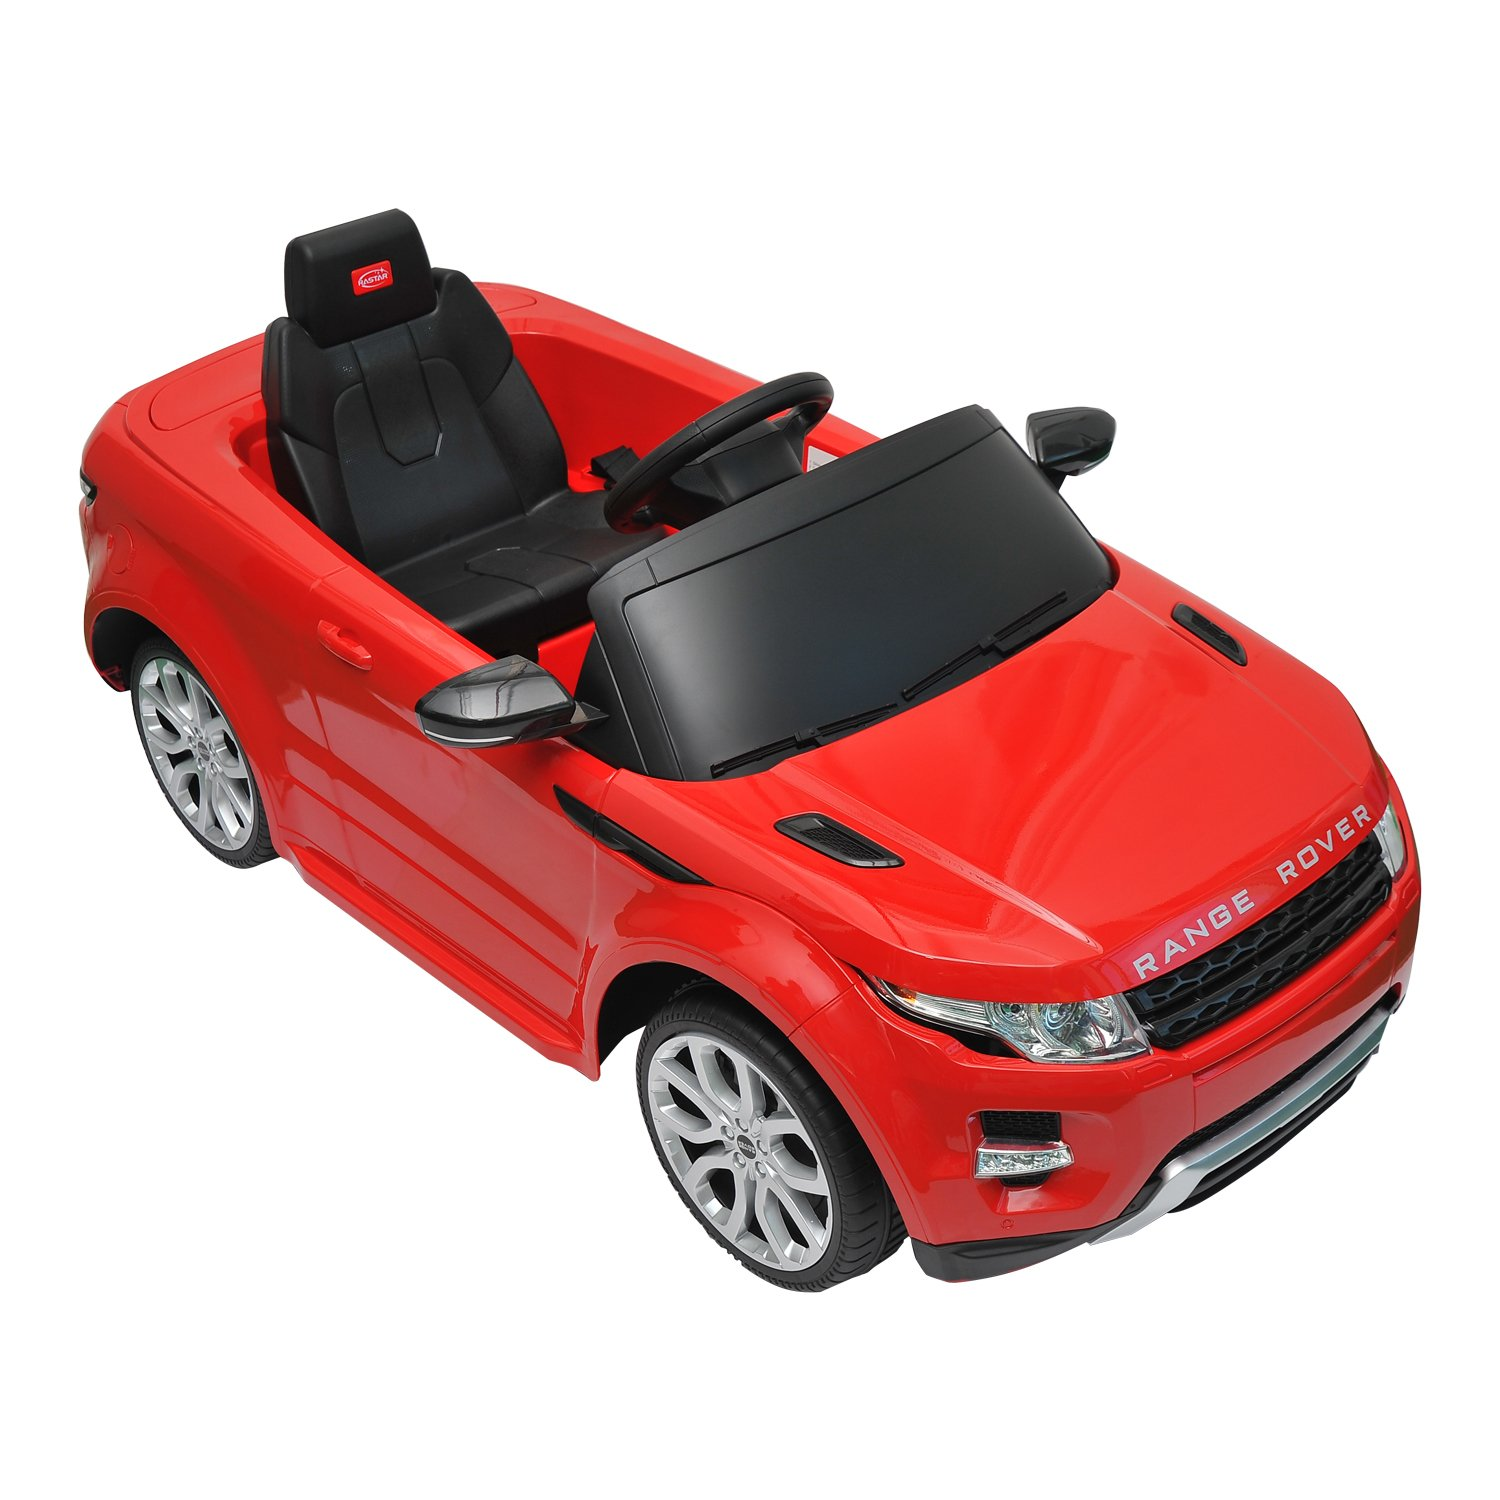 Aosom Land Rover Evoque Kids 6v Electric Ride On Toy Car w/ Parent Remote Control - Red at Sears.com